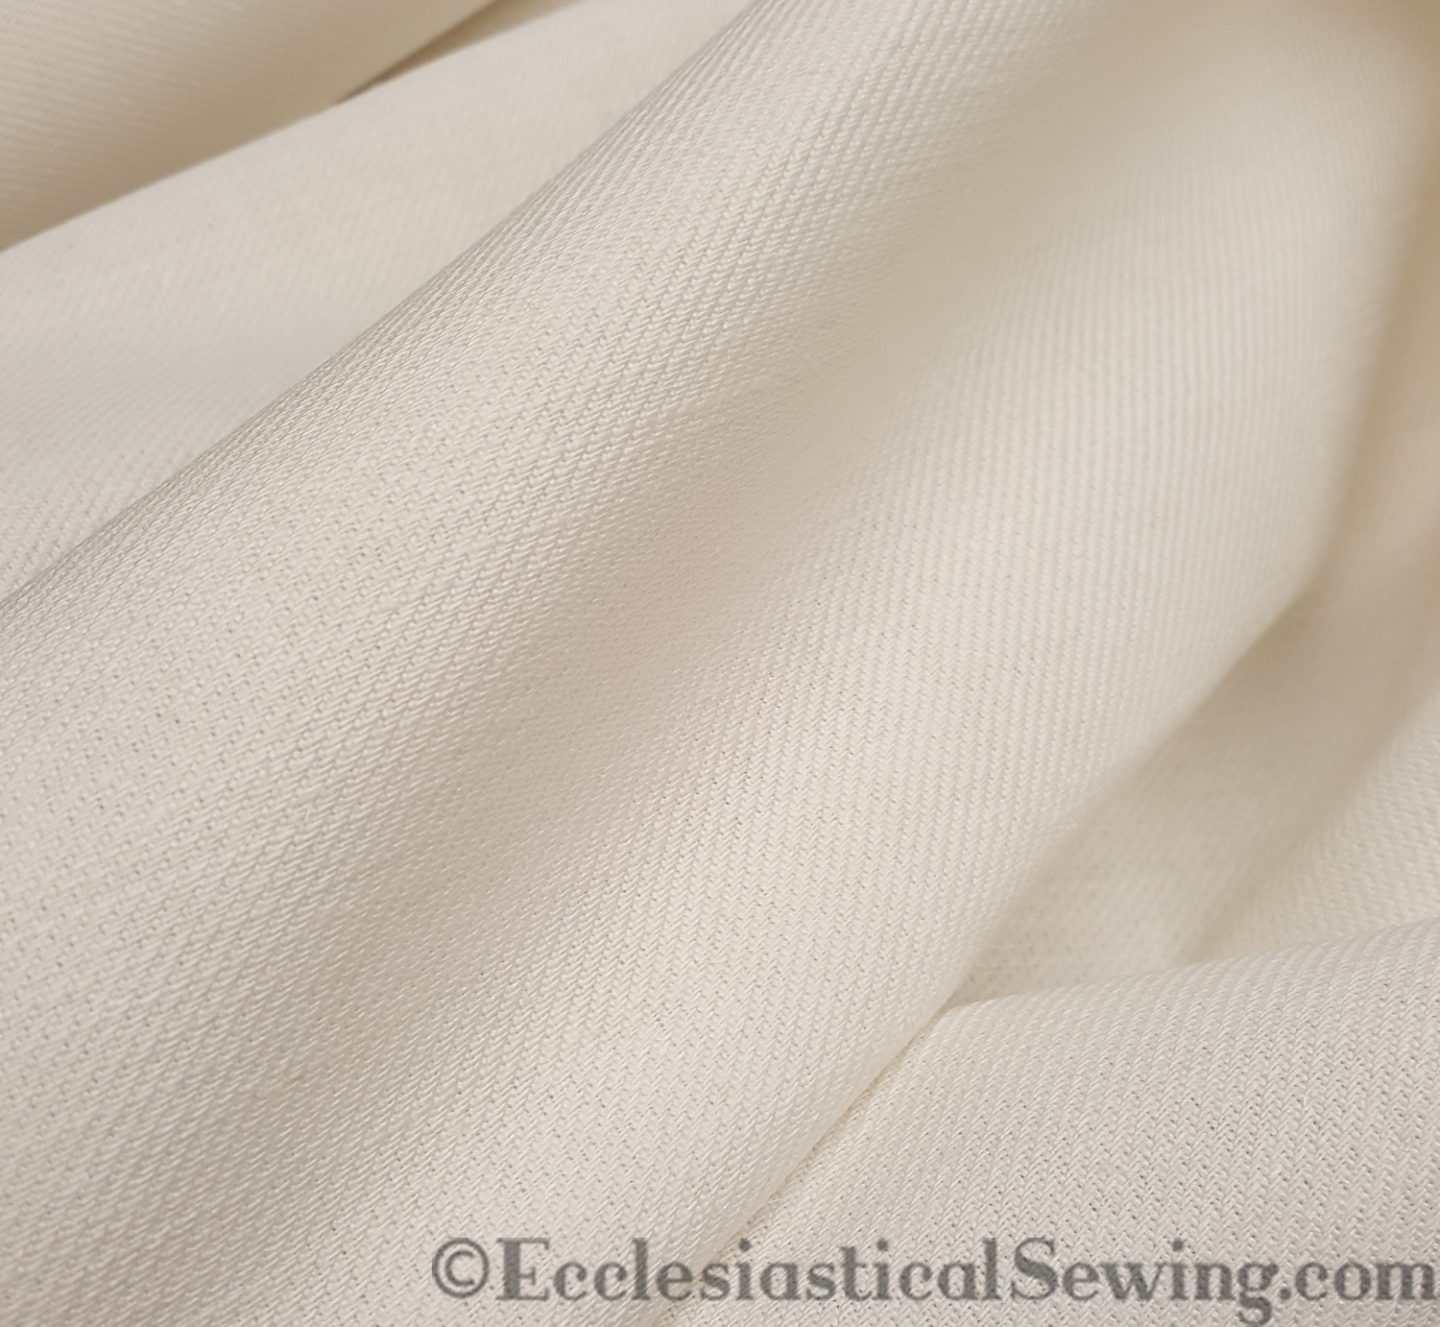 Dowlas Linen for Pastor and Priest Stoles